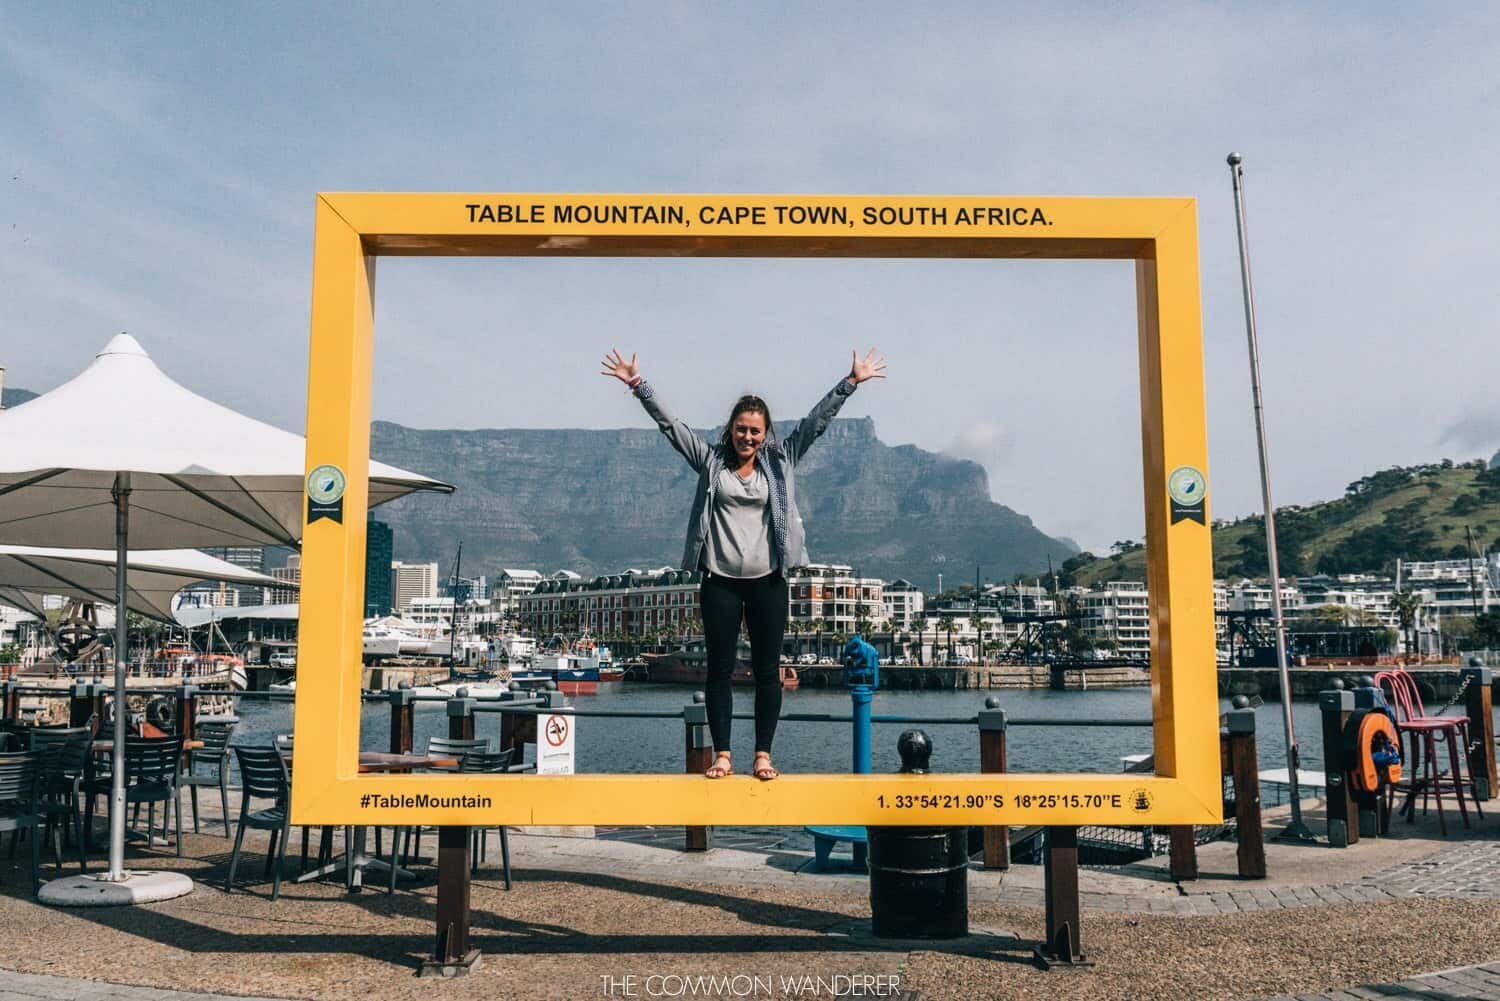 How to Travel Safely in South Africa recommendations